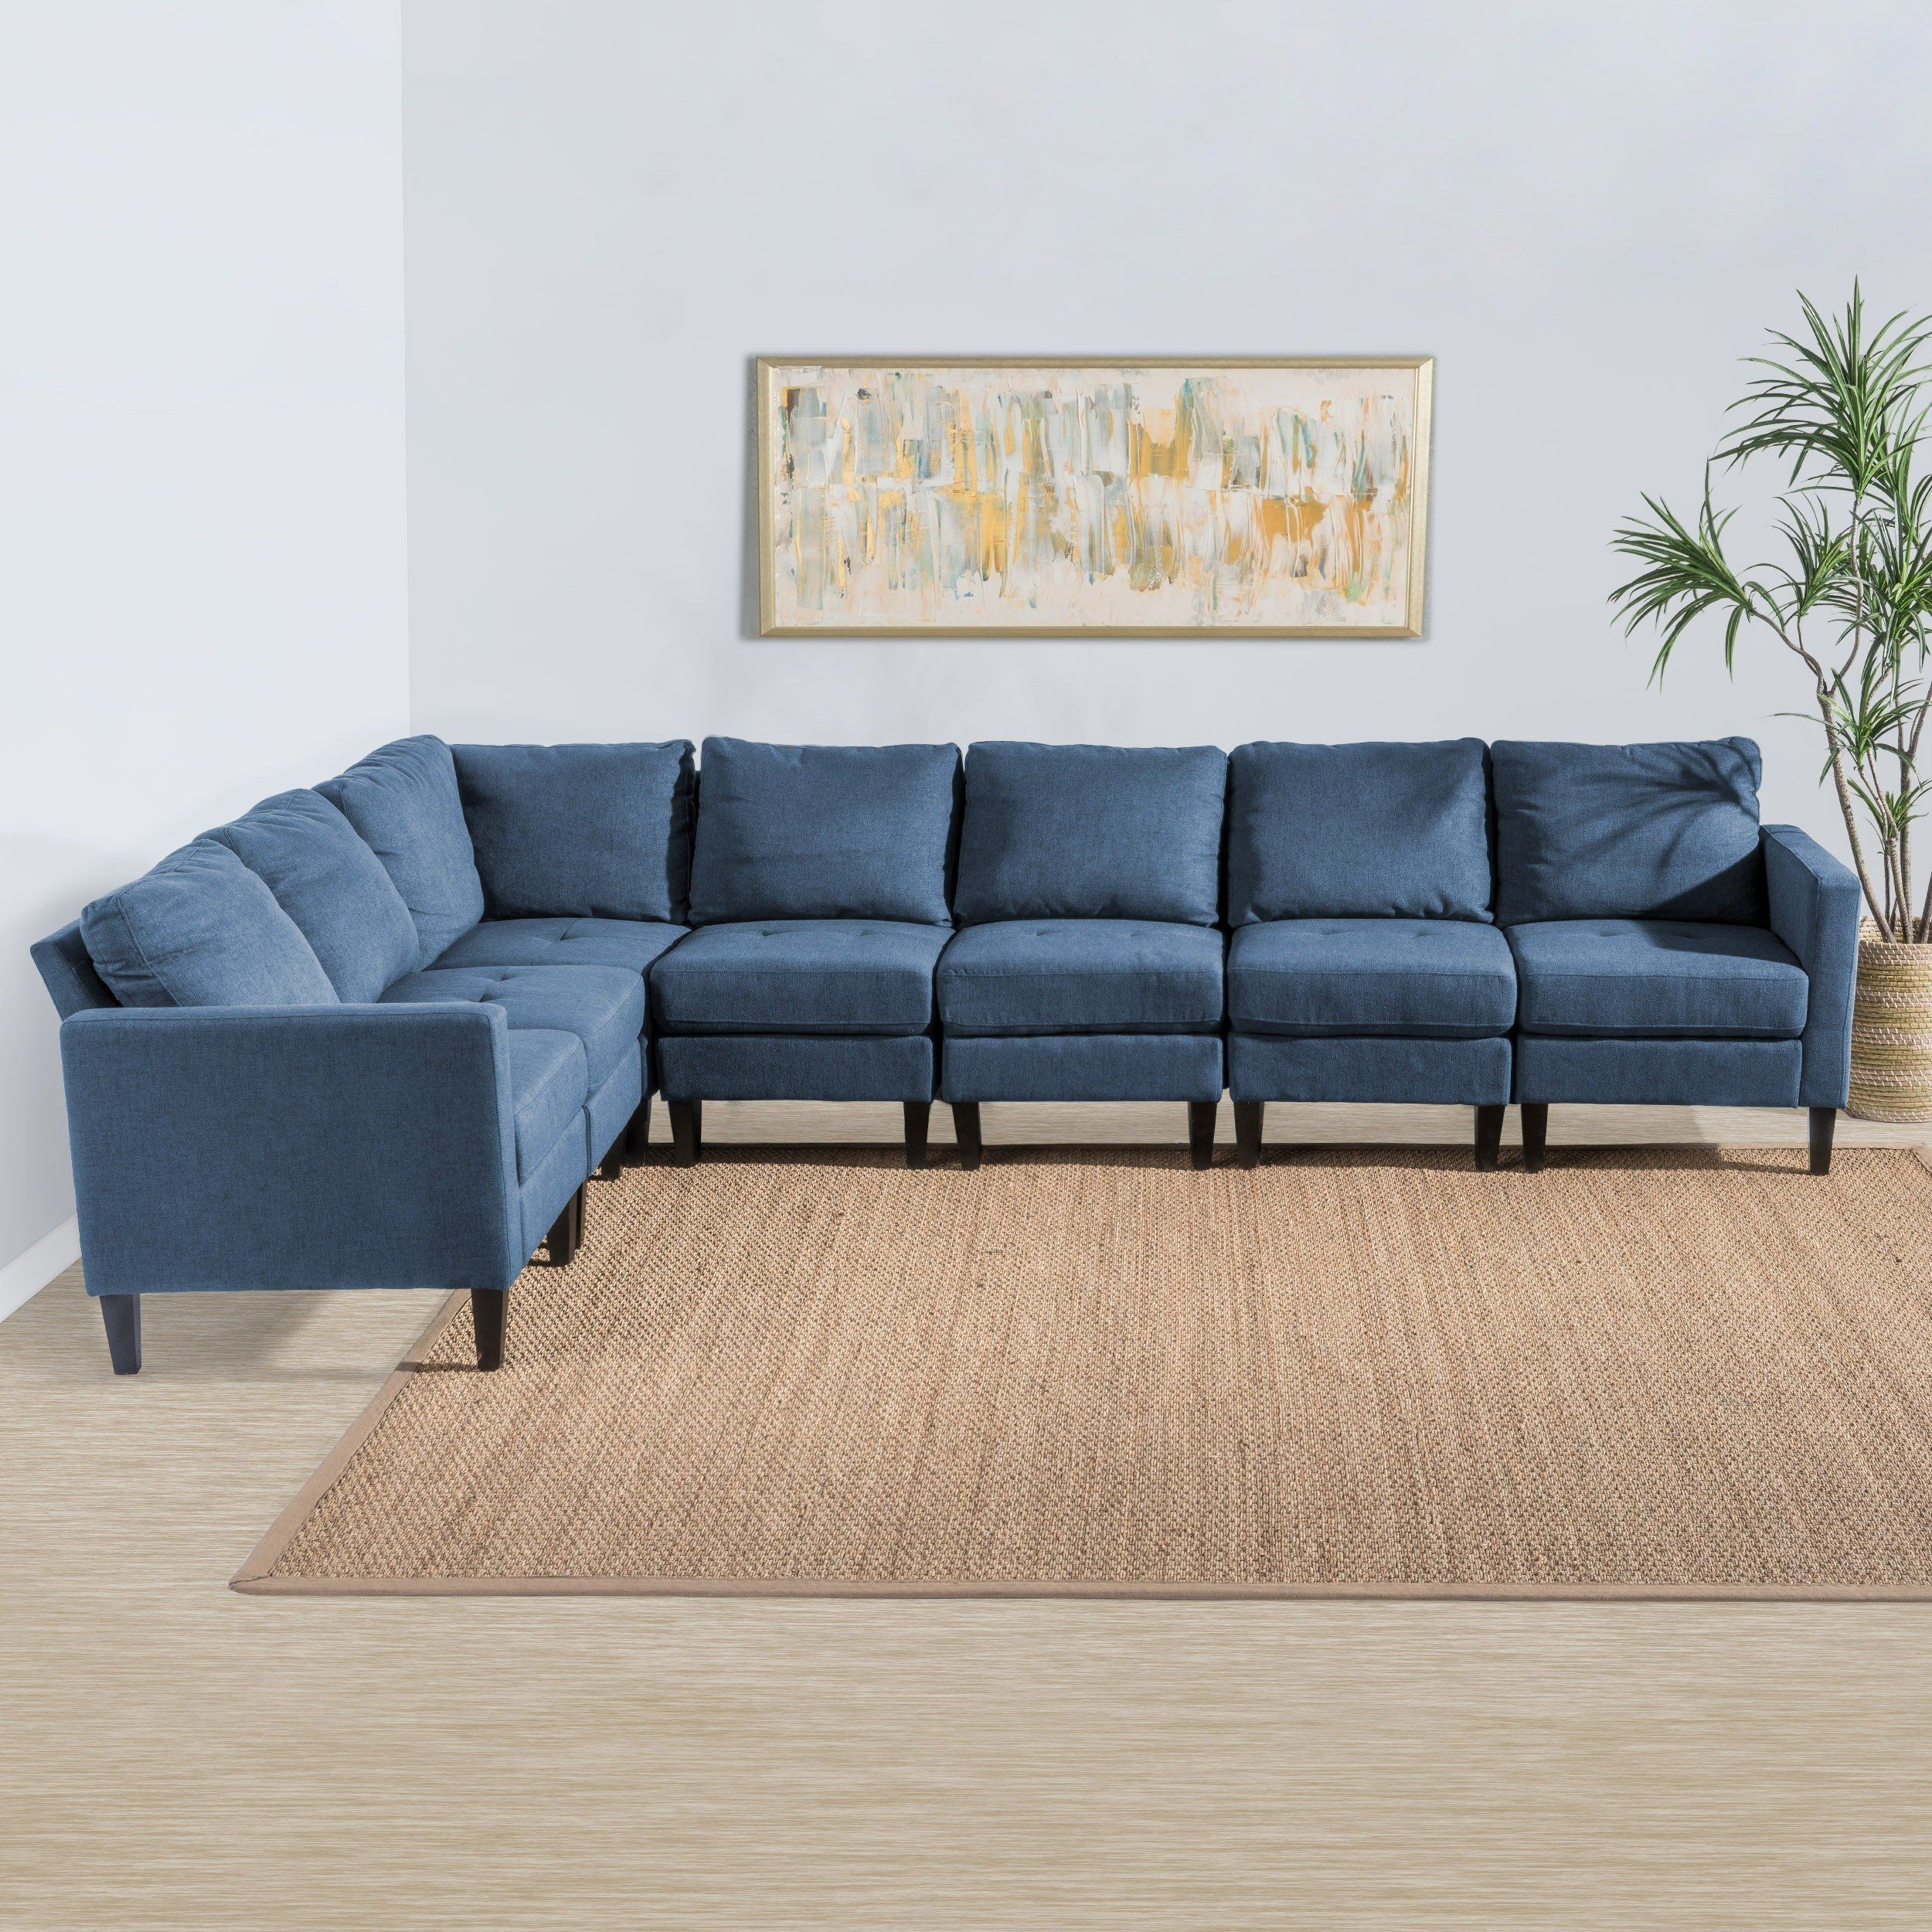 Actually Blue Denim Material Only Sectional Sofa Google Search Fabric Sectional Couch